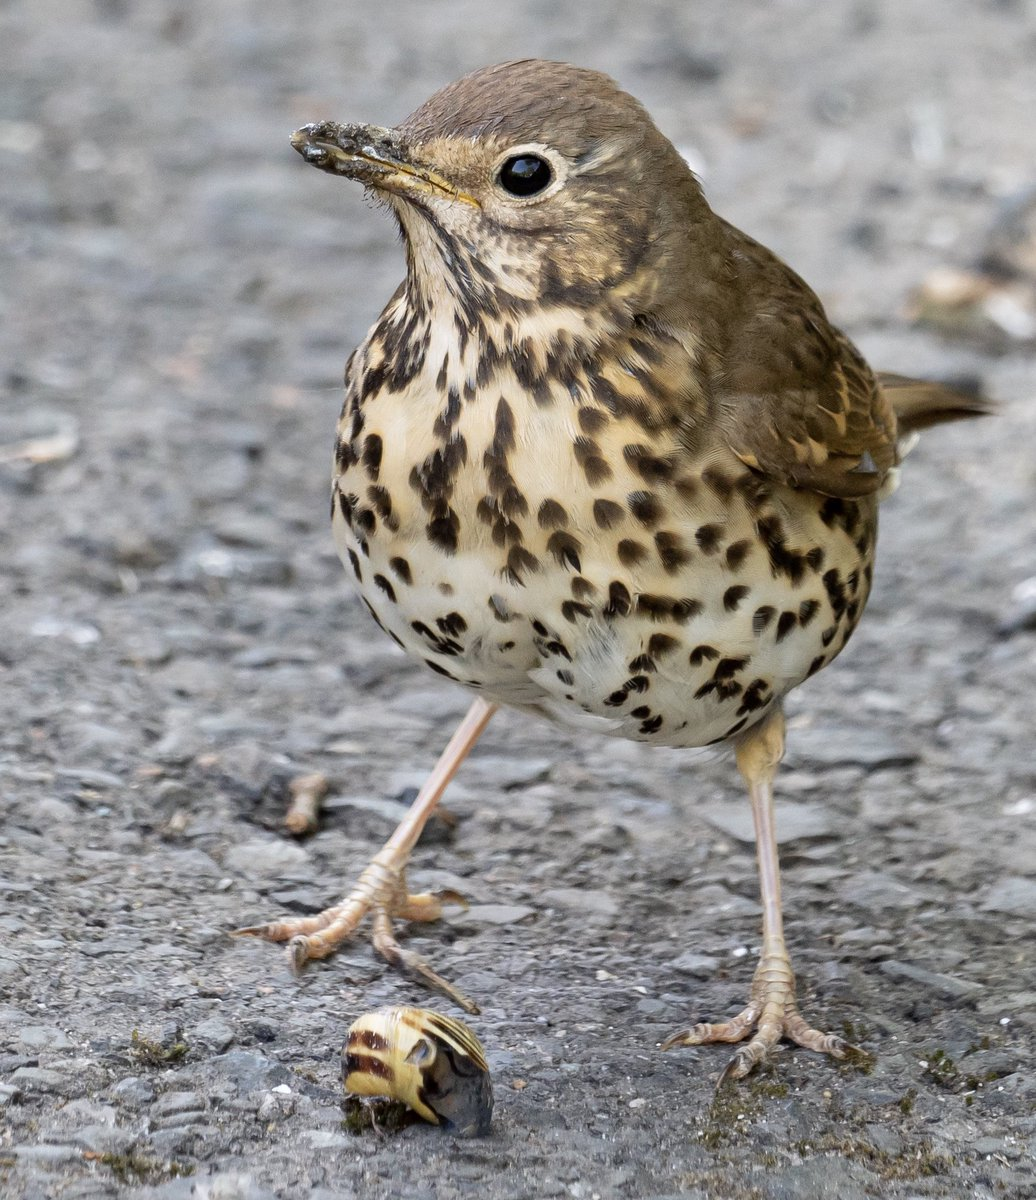 This is a song thrush terrorising the local snail population.  #mossley #wildlife #birds #songthrush @Natures_Voice @Britnatureguide @iNatureUK @LumixUK #nature  @tmbc_culture #saddleworth #tameside @TamesideCorr #summer #Springwatch @loloWilliams2pic.twitter.com/TzqgYeAUs9